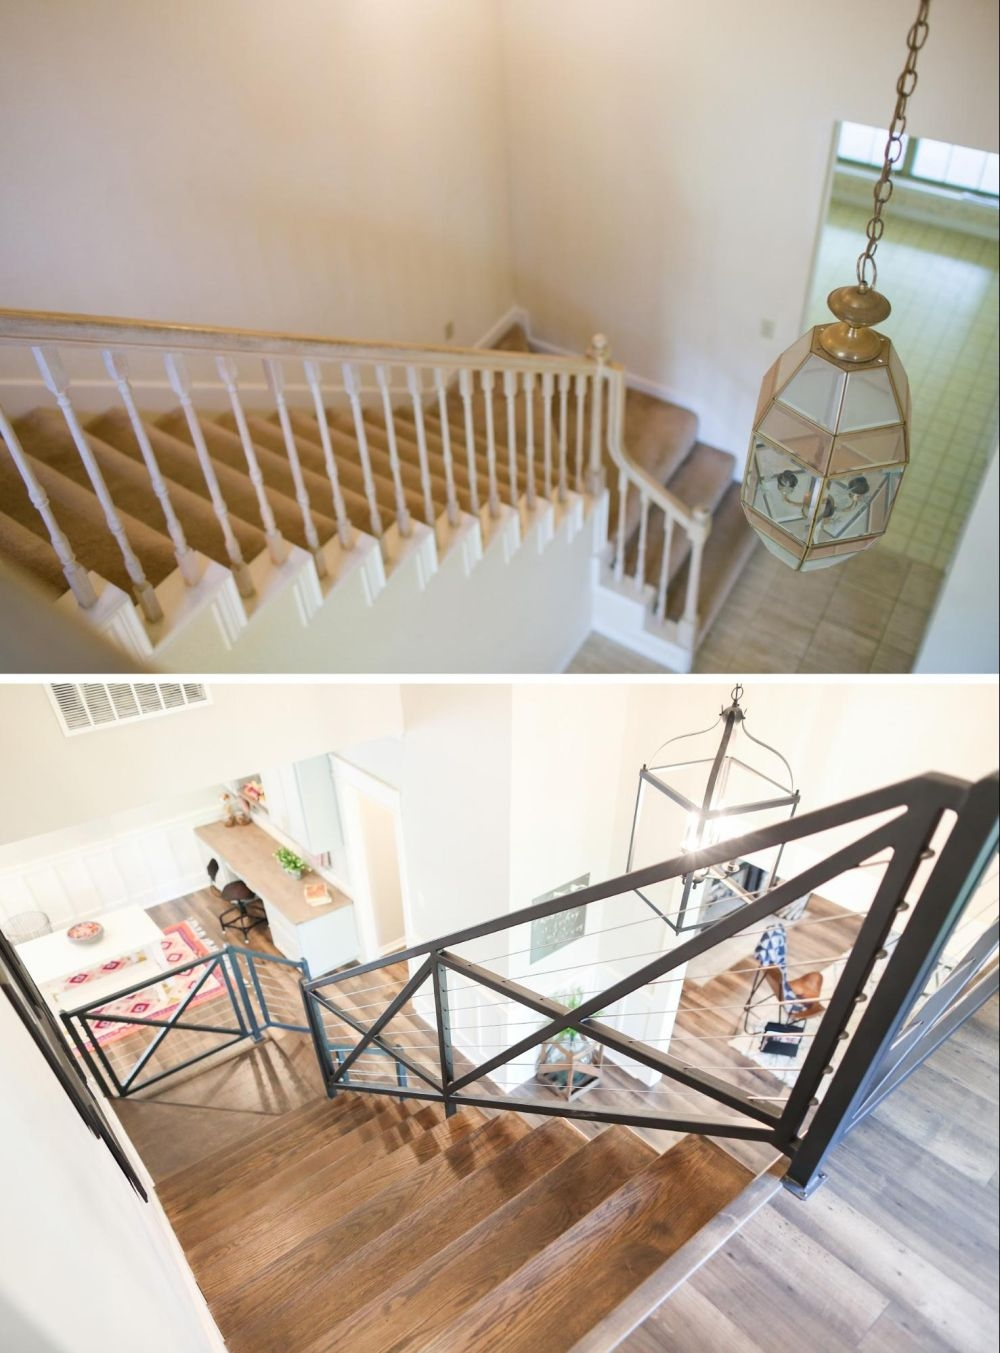 How To Give Your Old Stair Railings A Fresh New Look On A Small Budget | Diy Modern Stair Railing | Wall Mount | Cable | Model Modern Staircase | Different Style | Contemporary